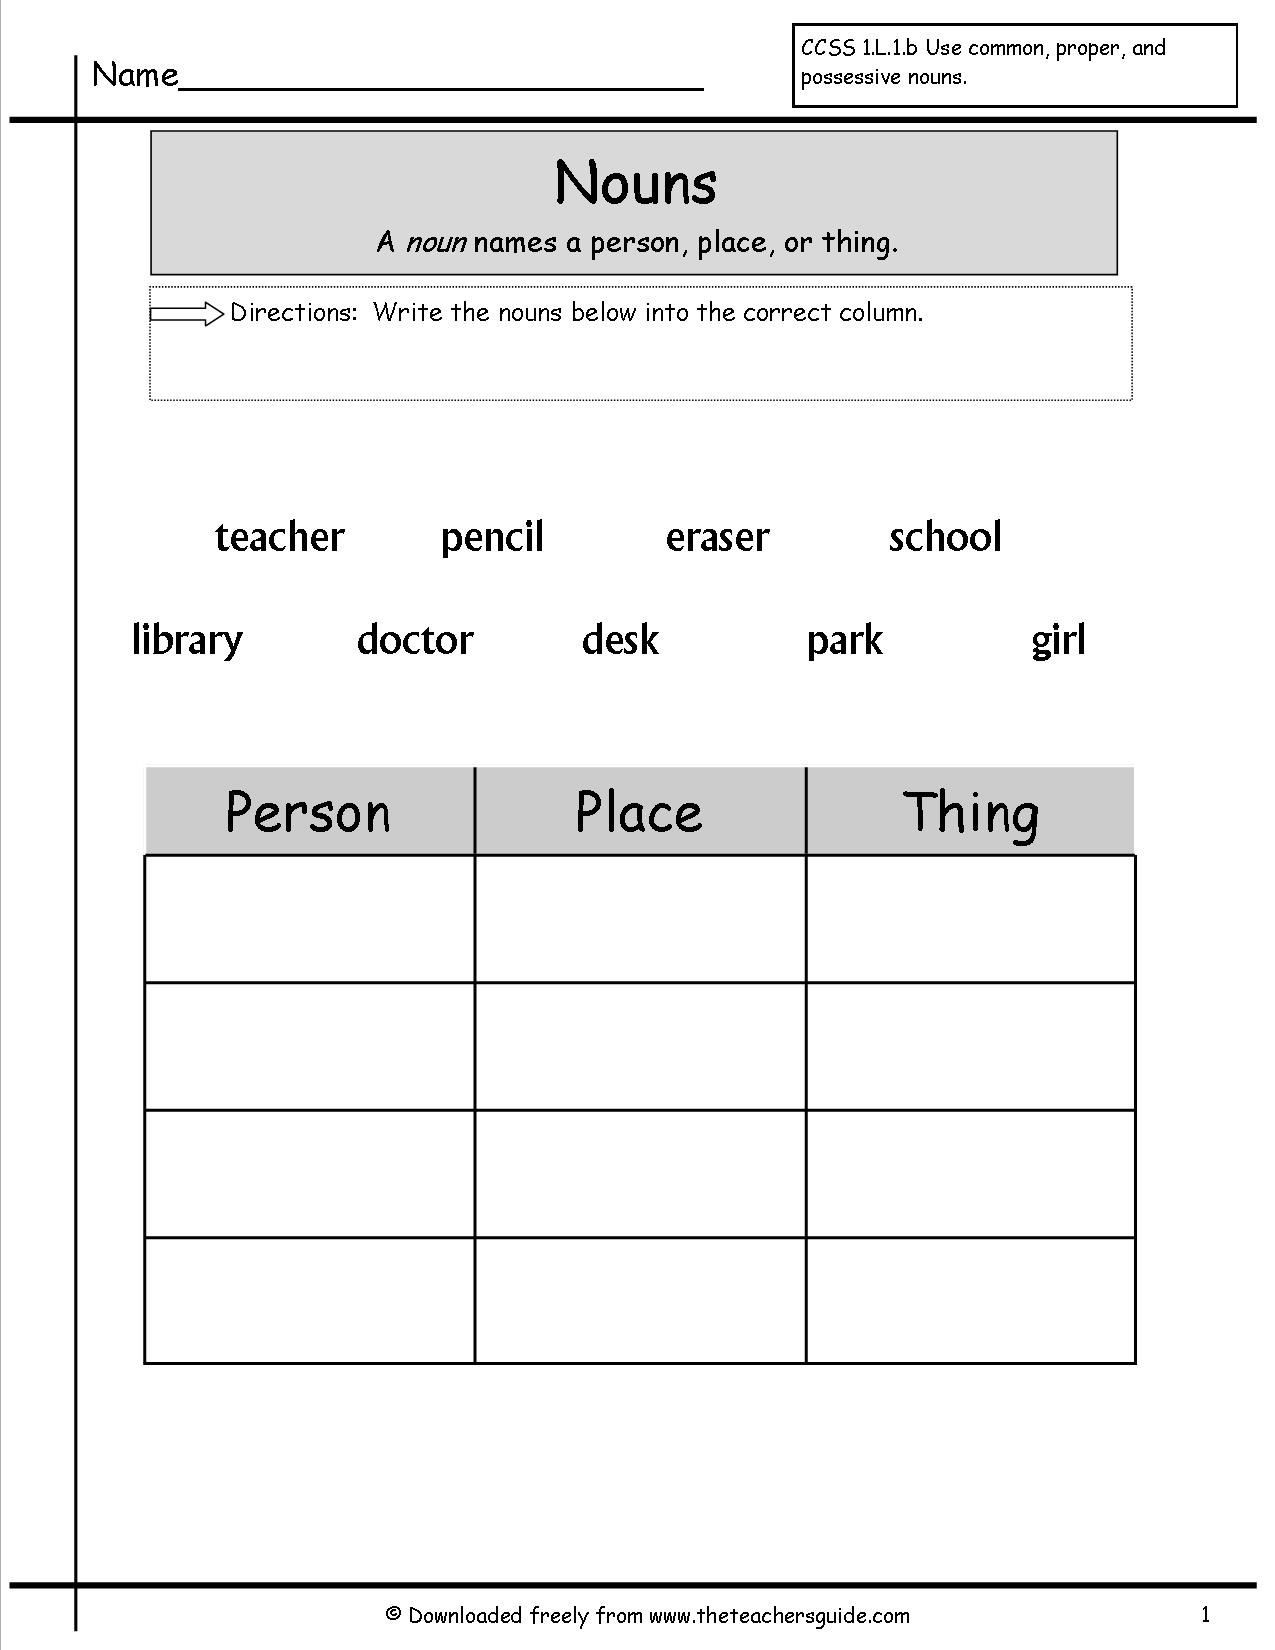 Possessive Nouns Worksheets 1st Grade Noun Worksheets for Grade 1